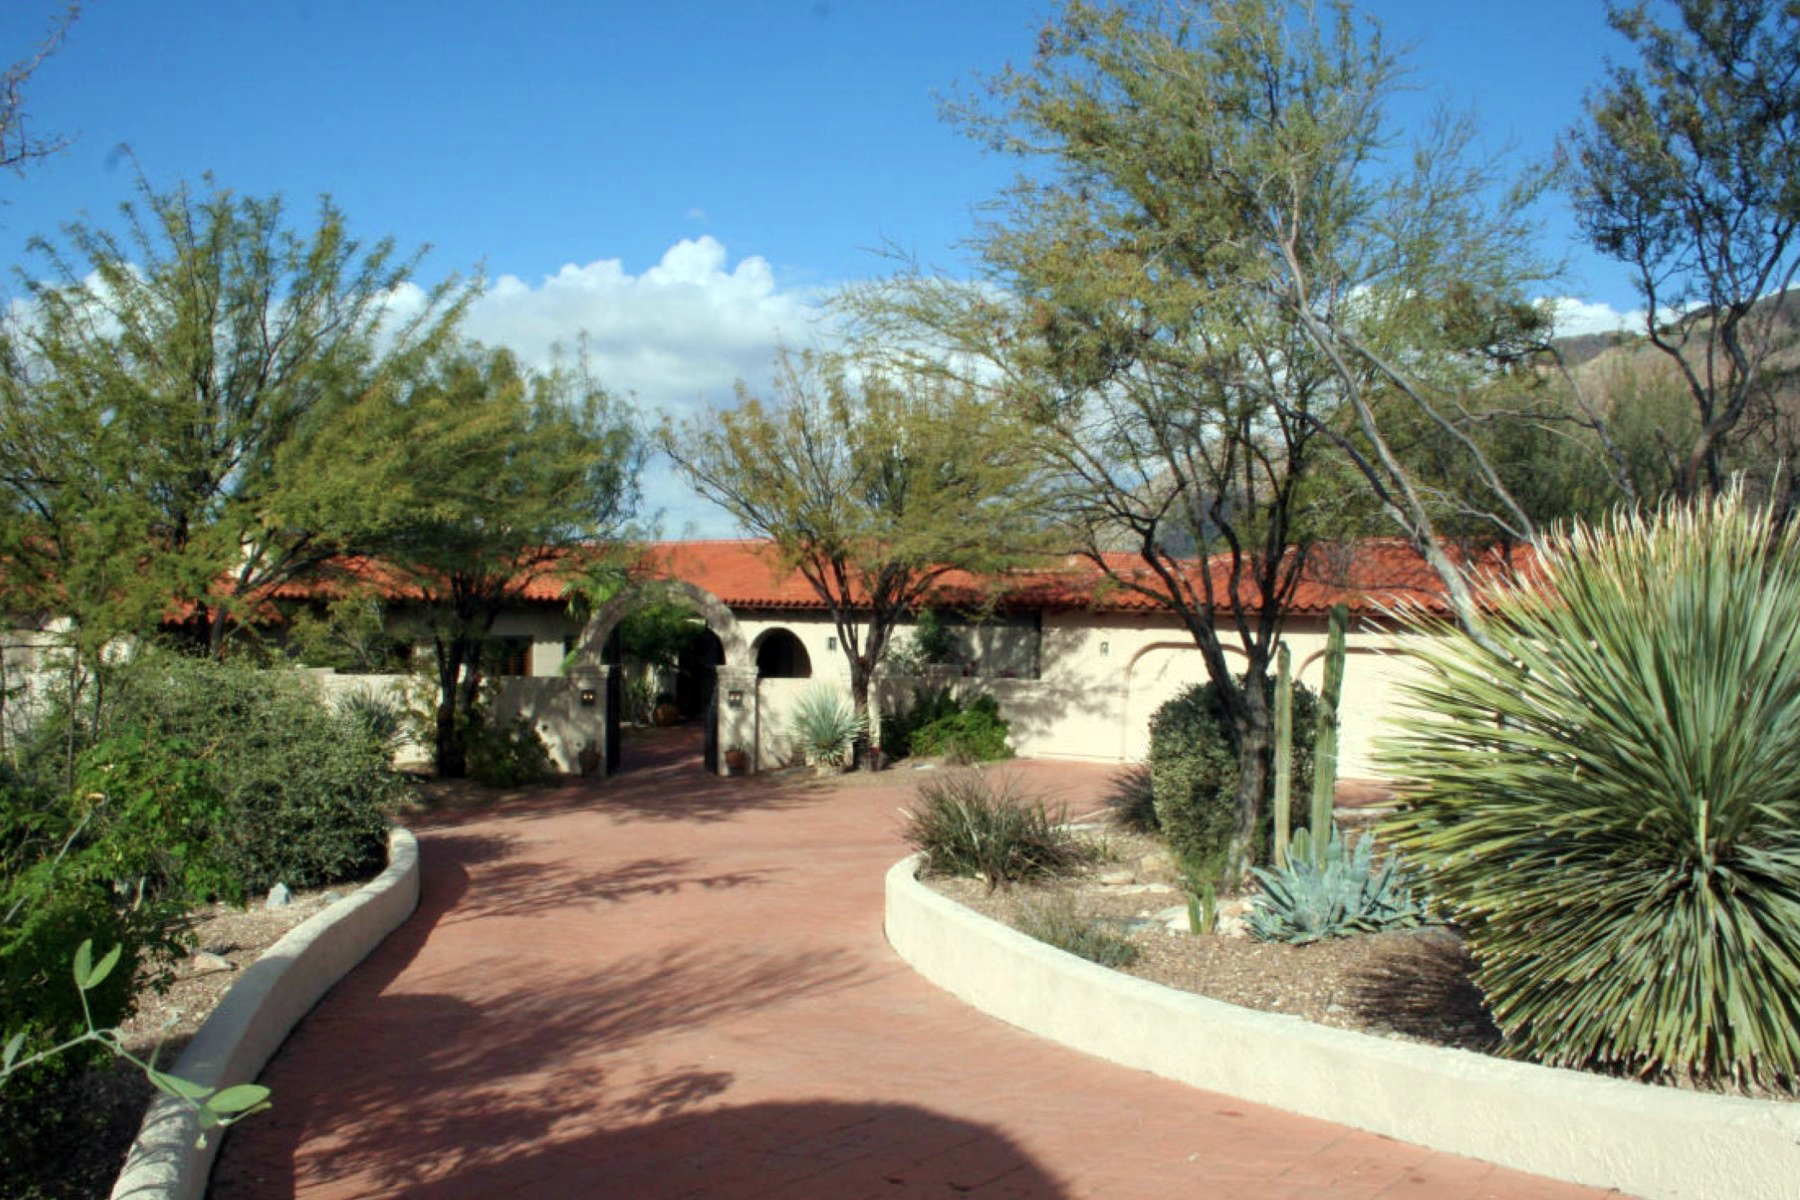 Single Family Home for Sale at Custom Built High-Quality Construction Home on Outstanding Views Lot 7461 N Moon Spirit Lane Tucson, Arizona 85701 United States